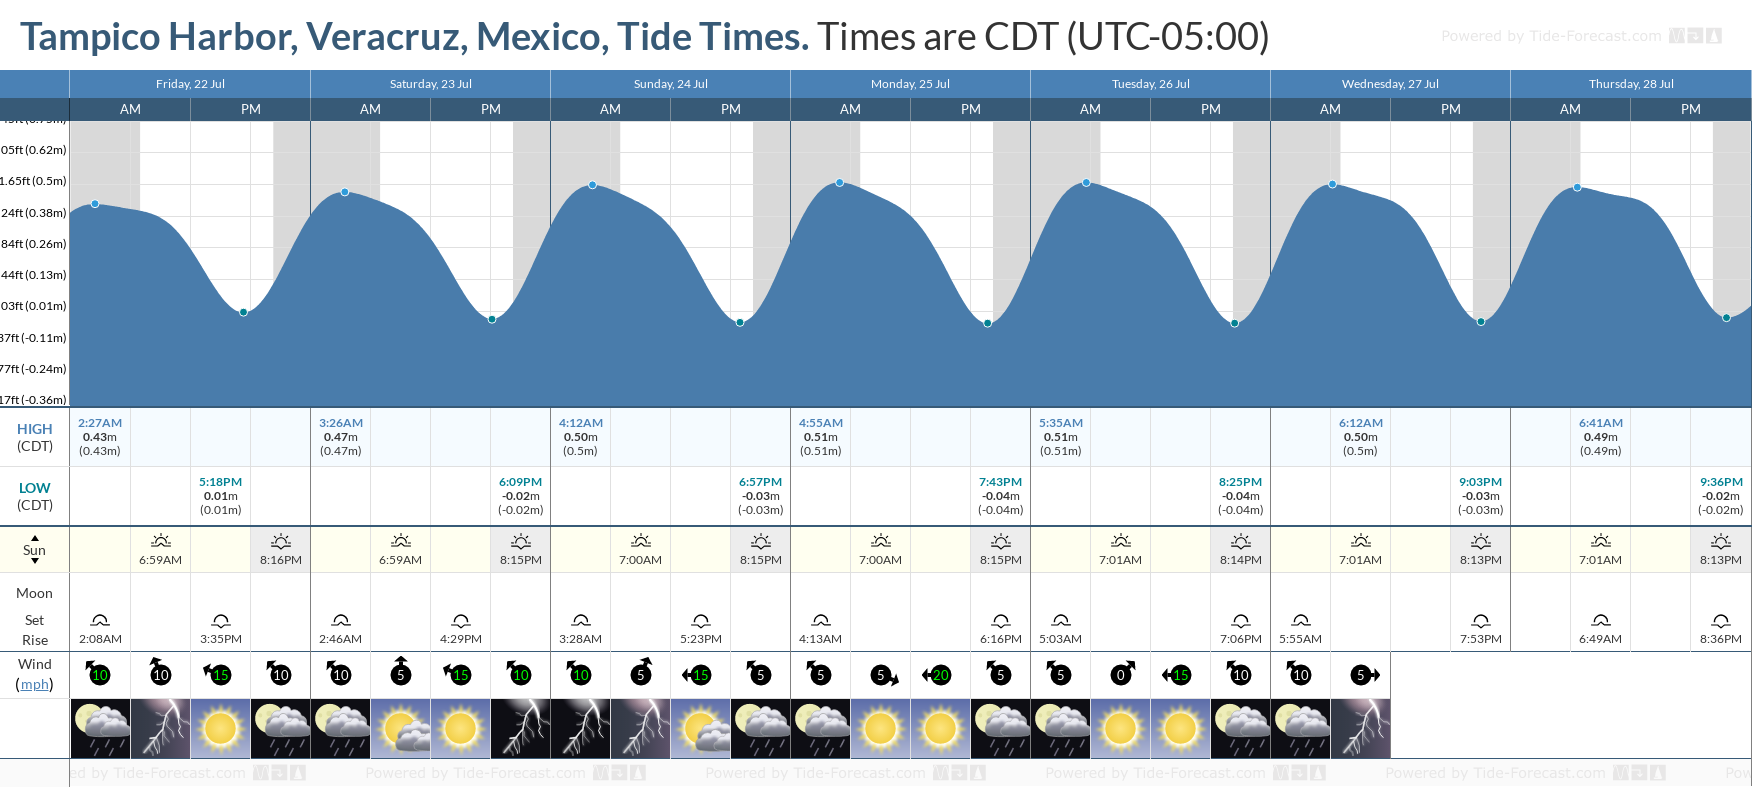 Tampico Harbor, Veracruz, Mexico Tide Chart including high and low tide tide times for the next 7 days